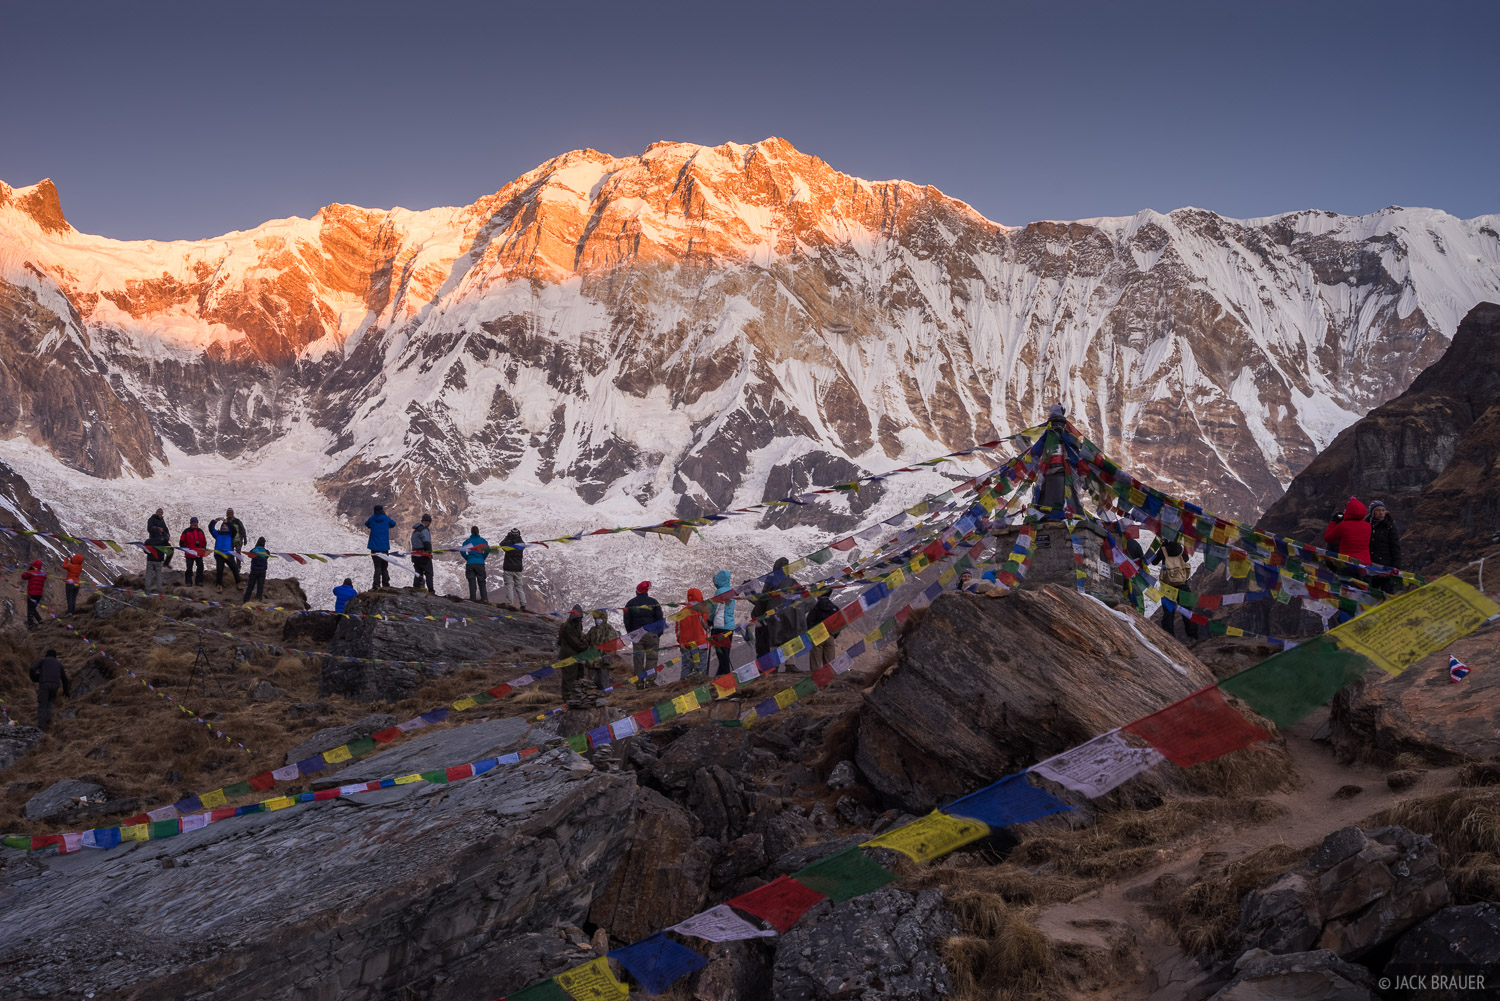 Annapurna,Himalaya,Nepal,prayer flags, Annapurna Base Camp, photo